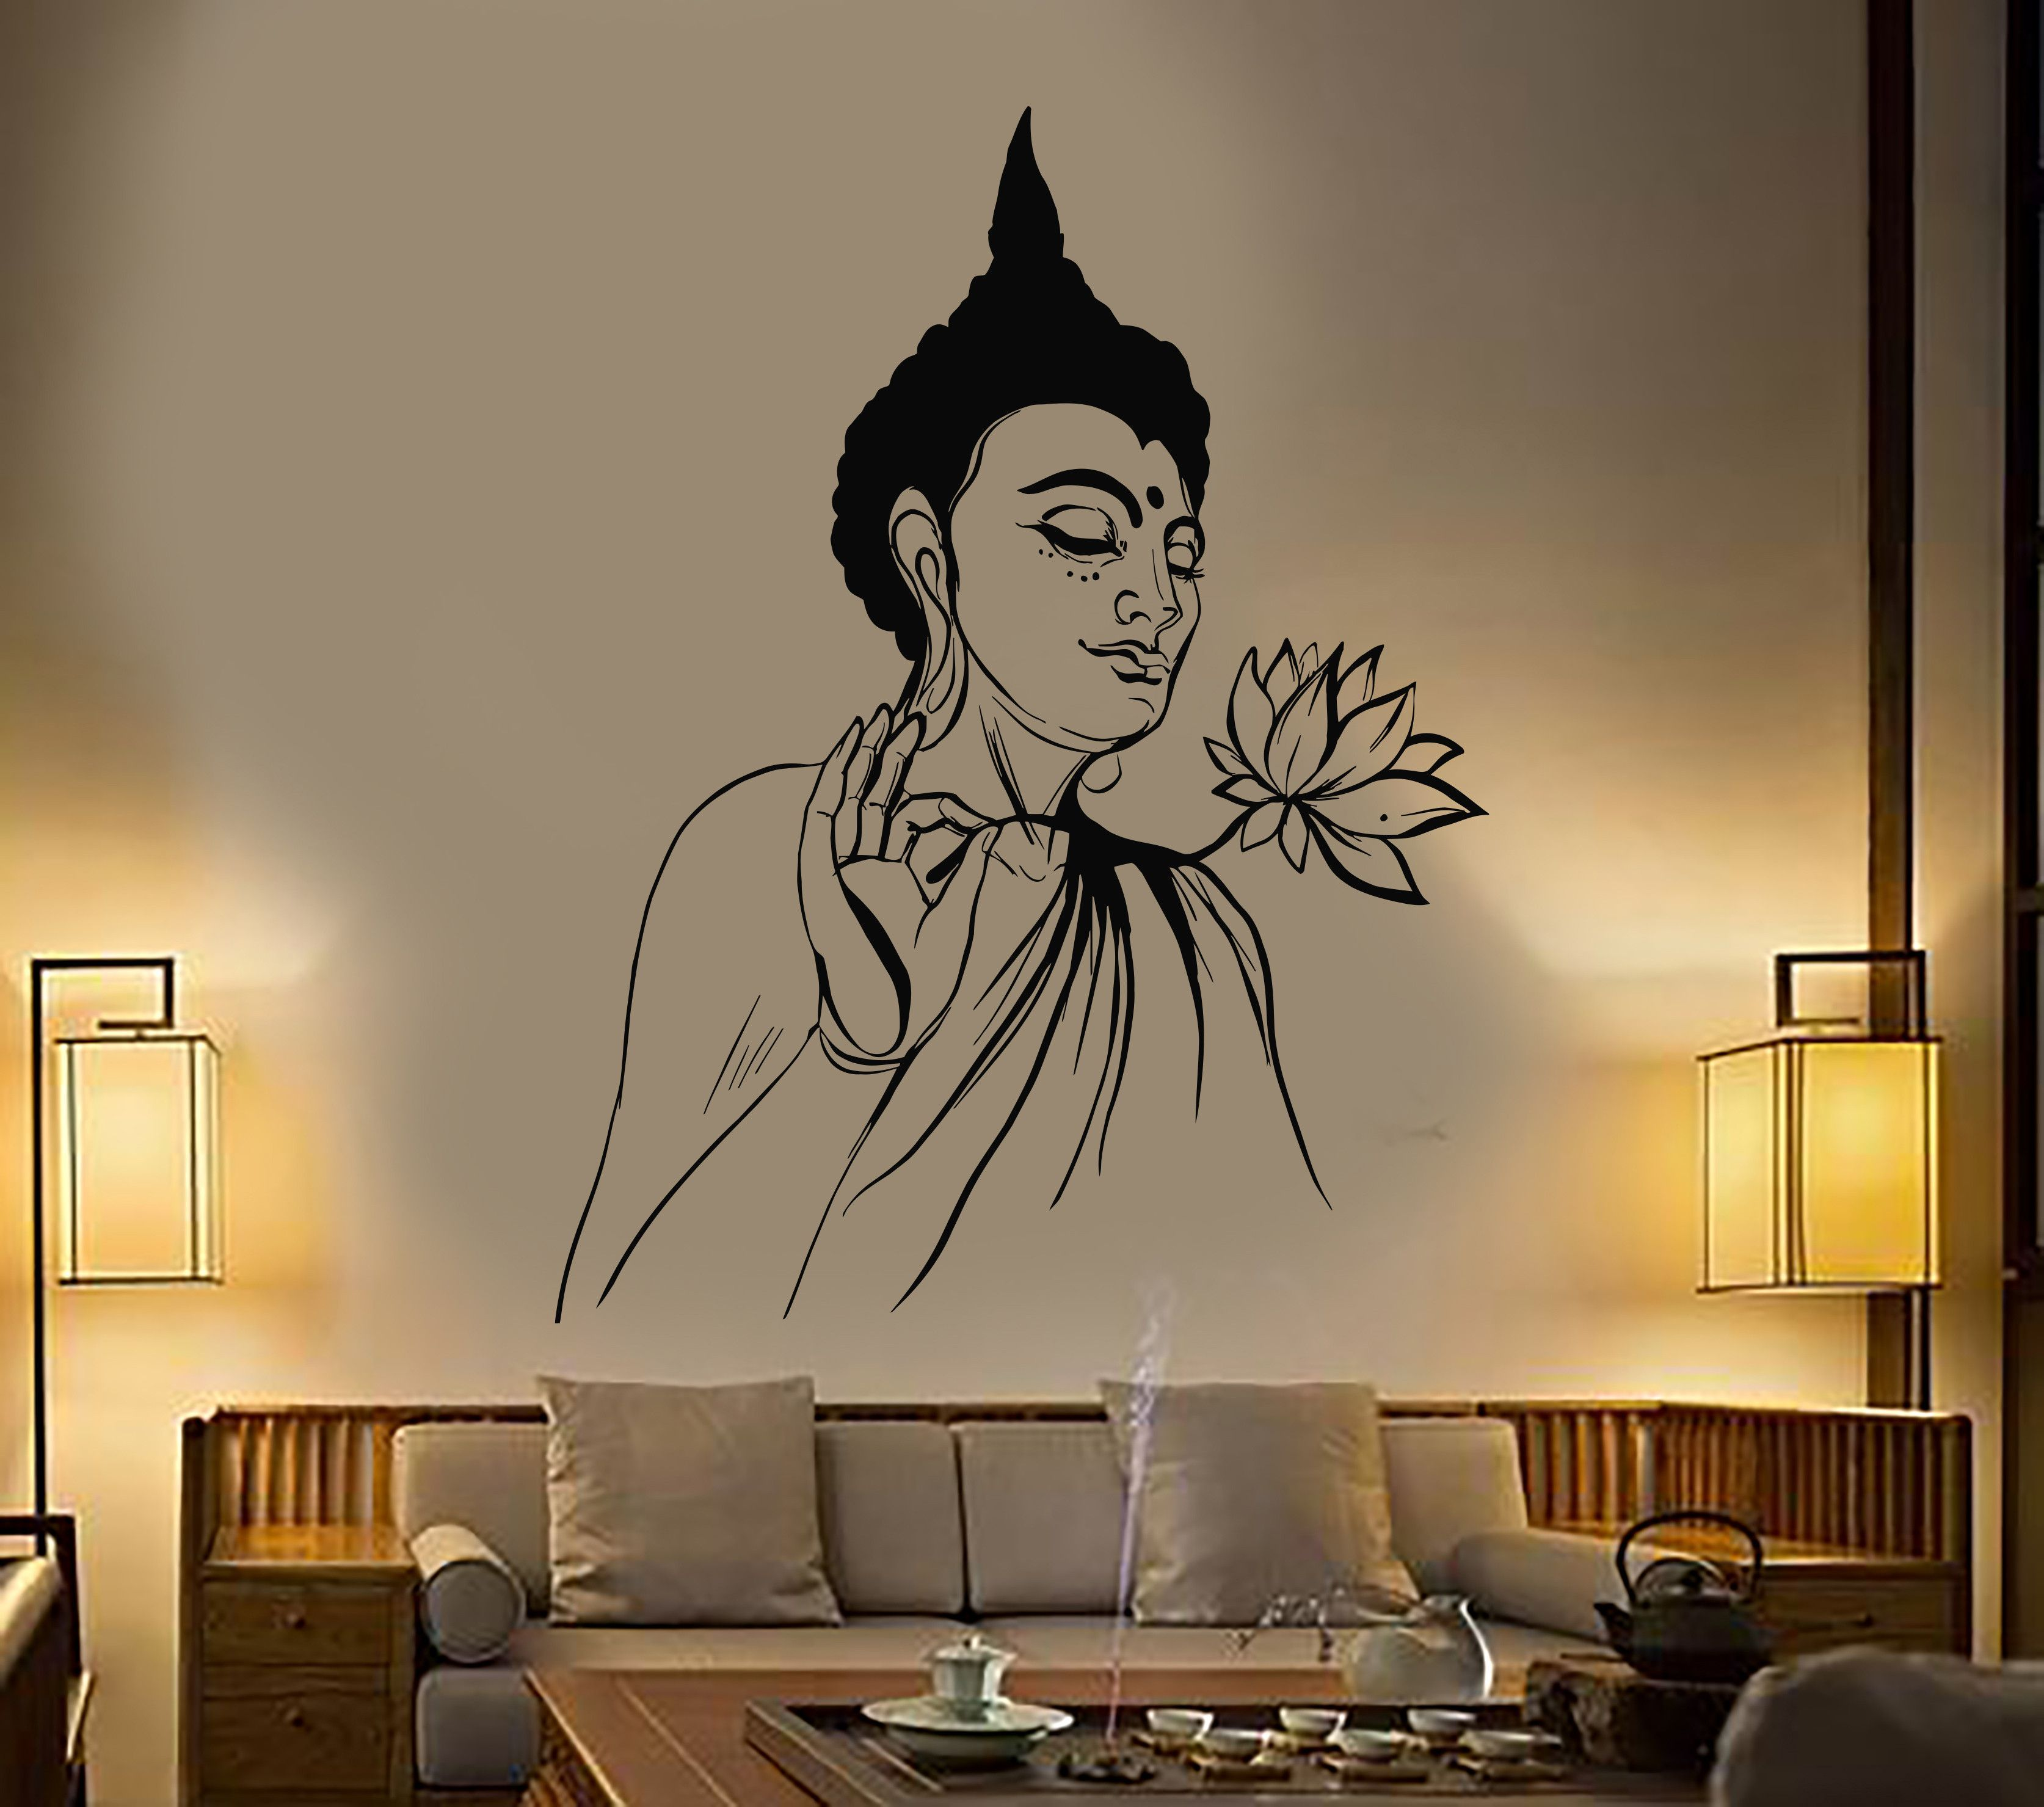 Cool Wall Decal Vinyl Wall Decal Buddha Lotus Flower Buddhism Yoga